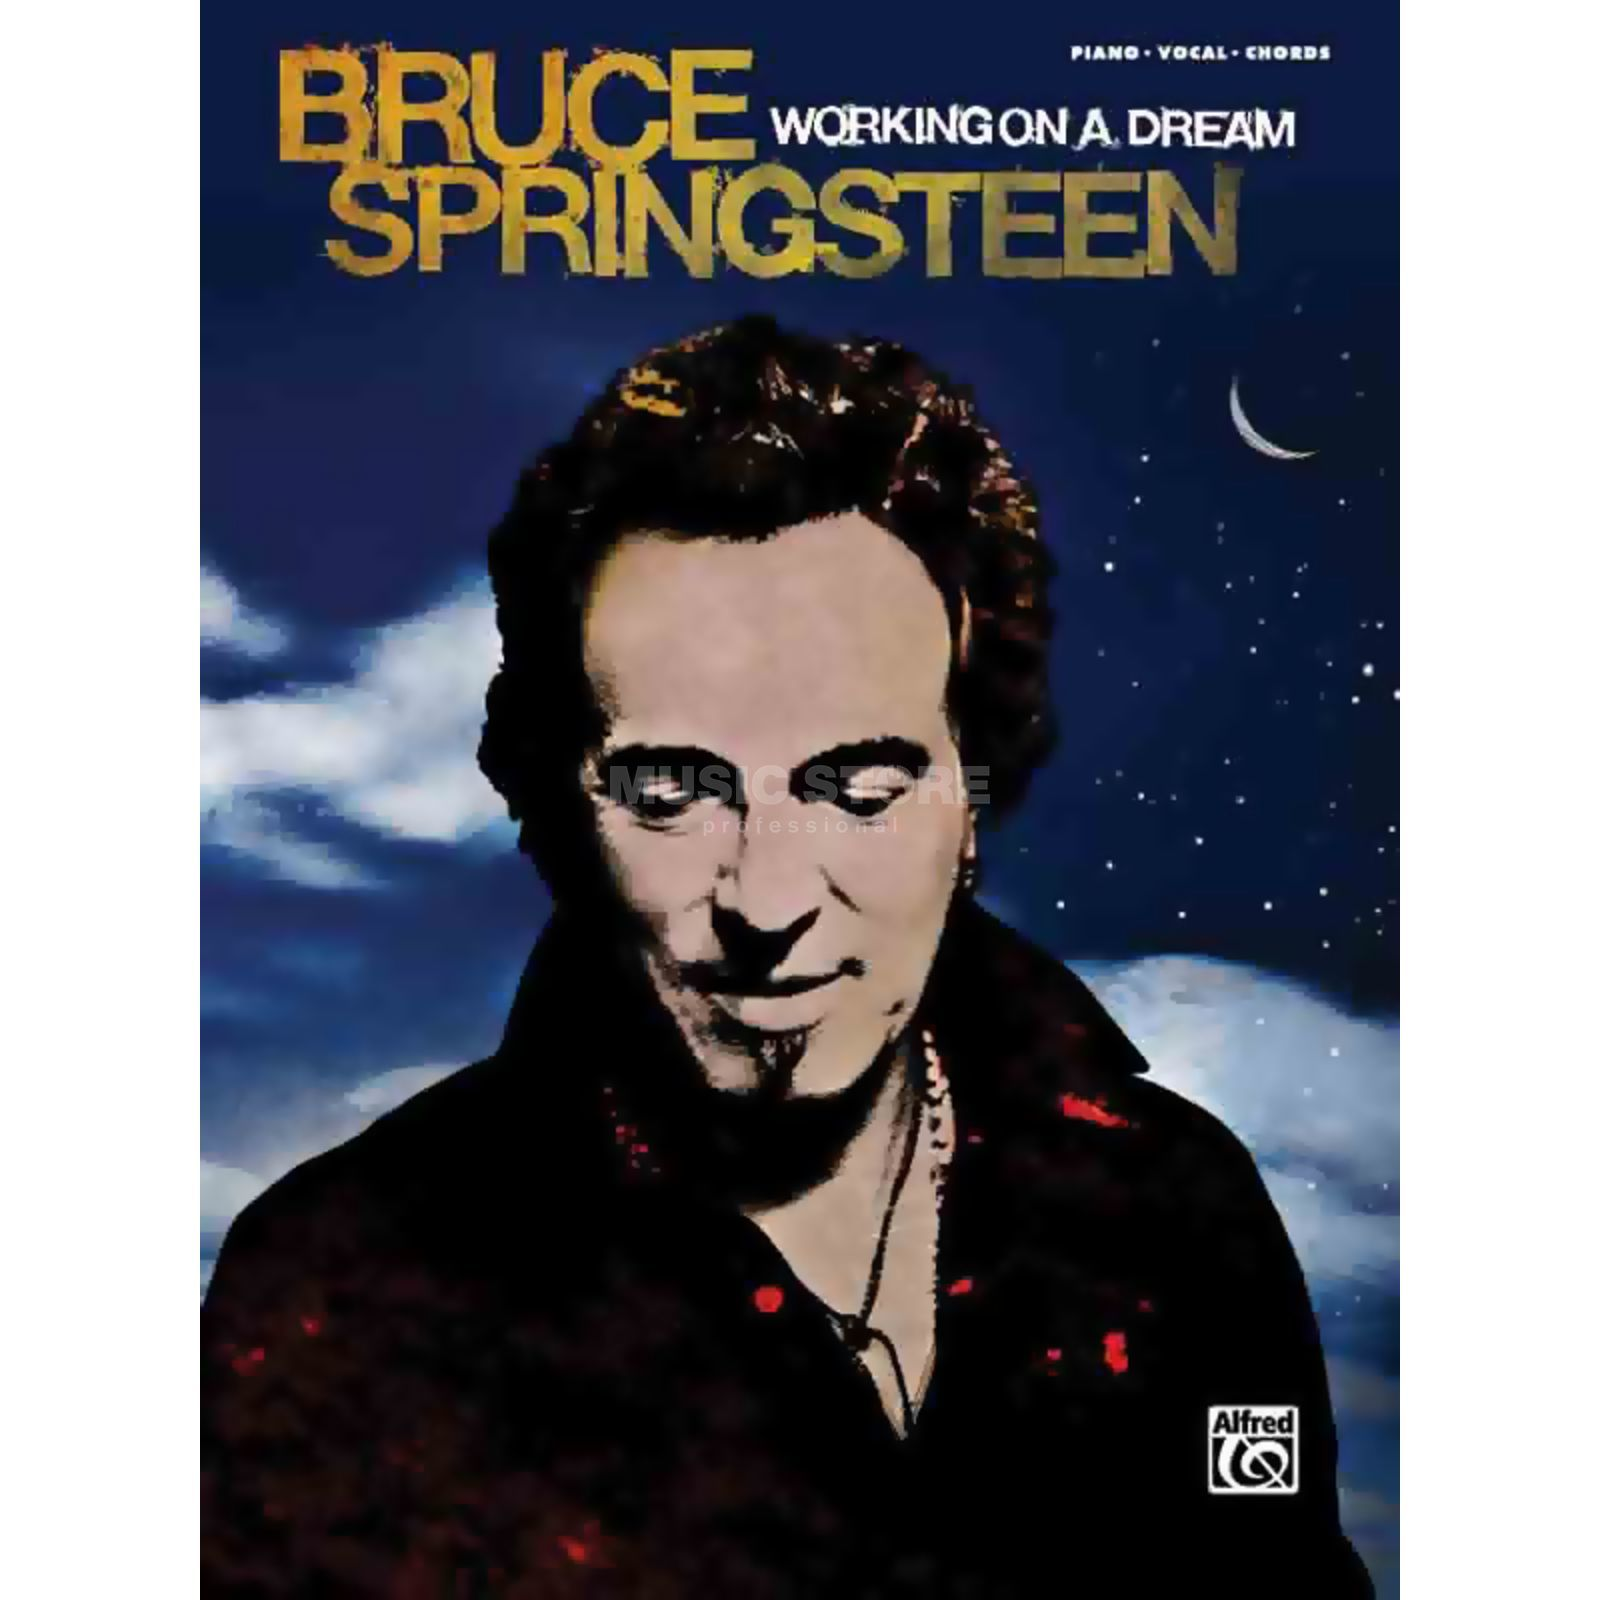 Alfred Music Bruce Springsteen: Working on a Dream Produktbild